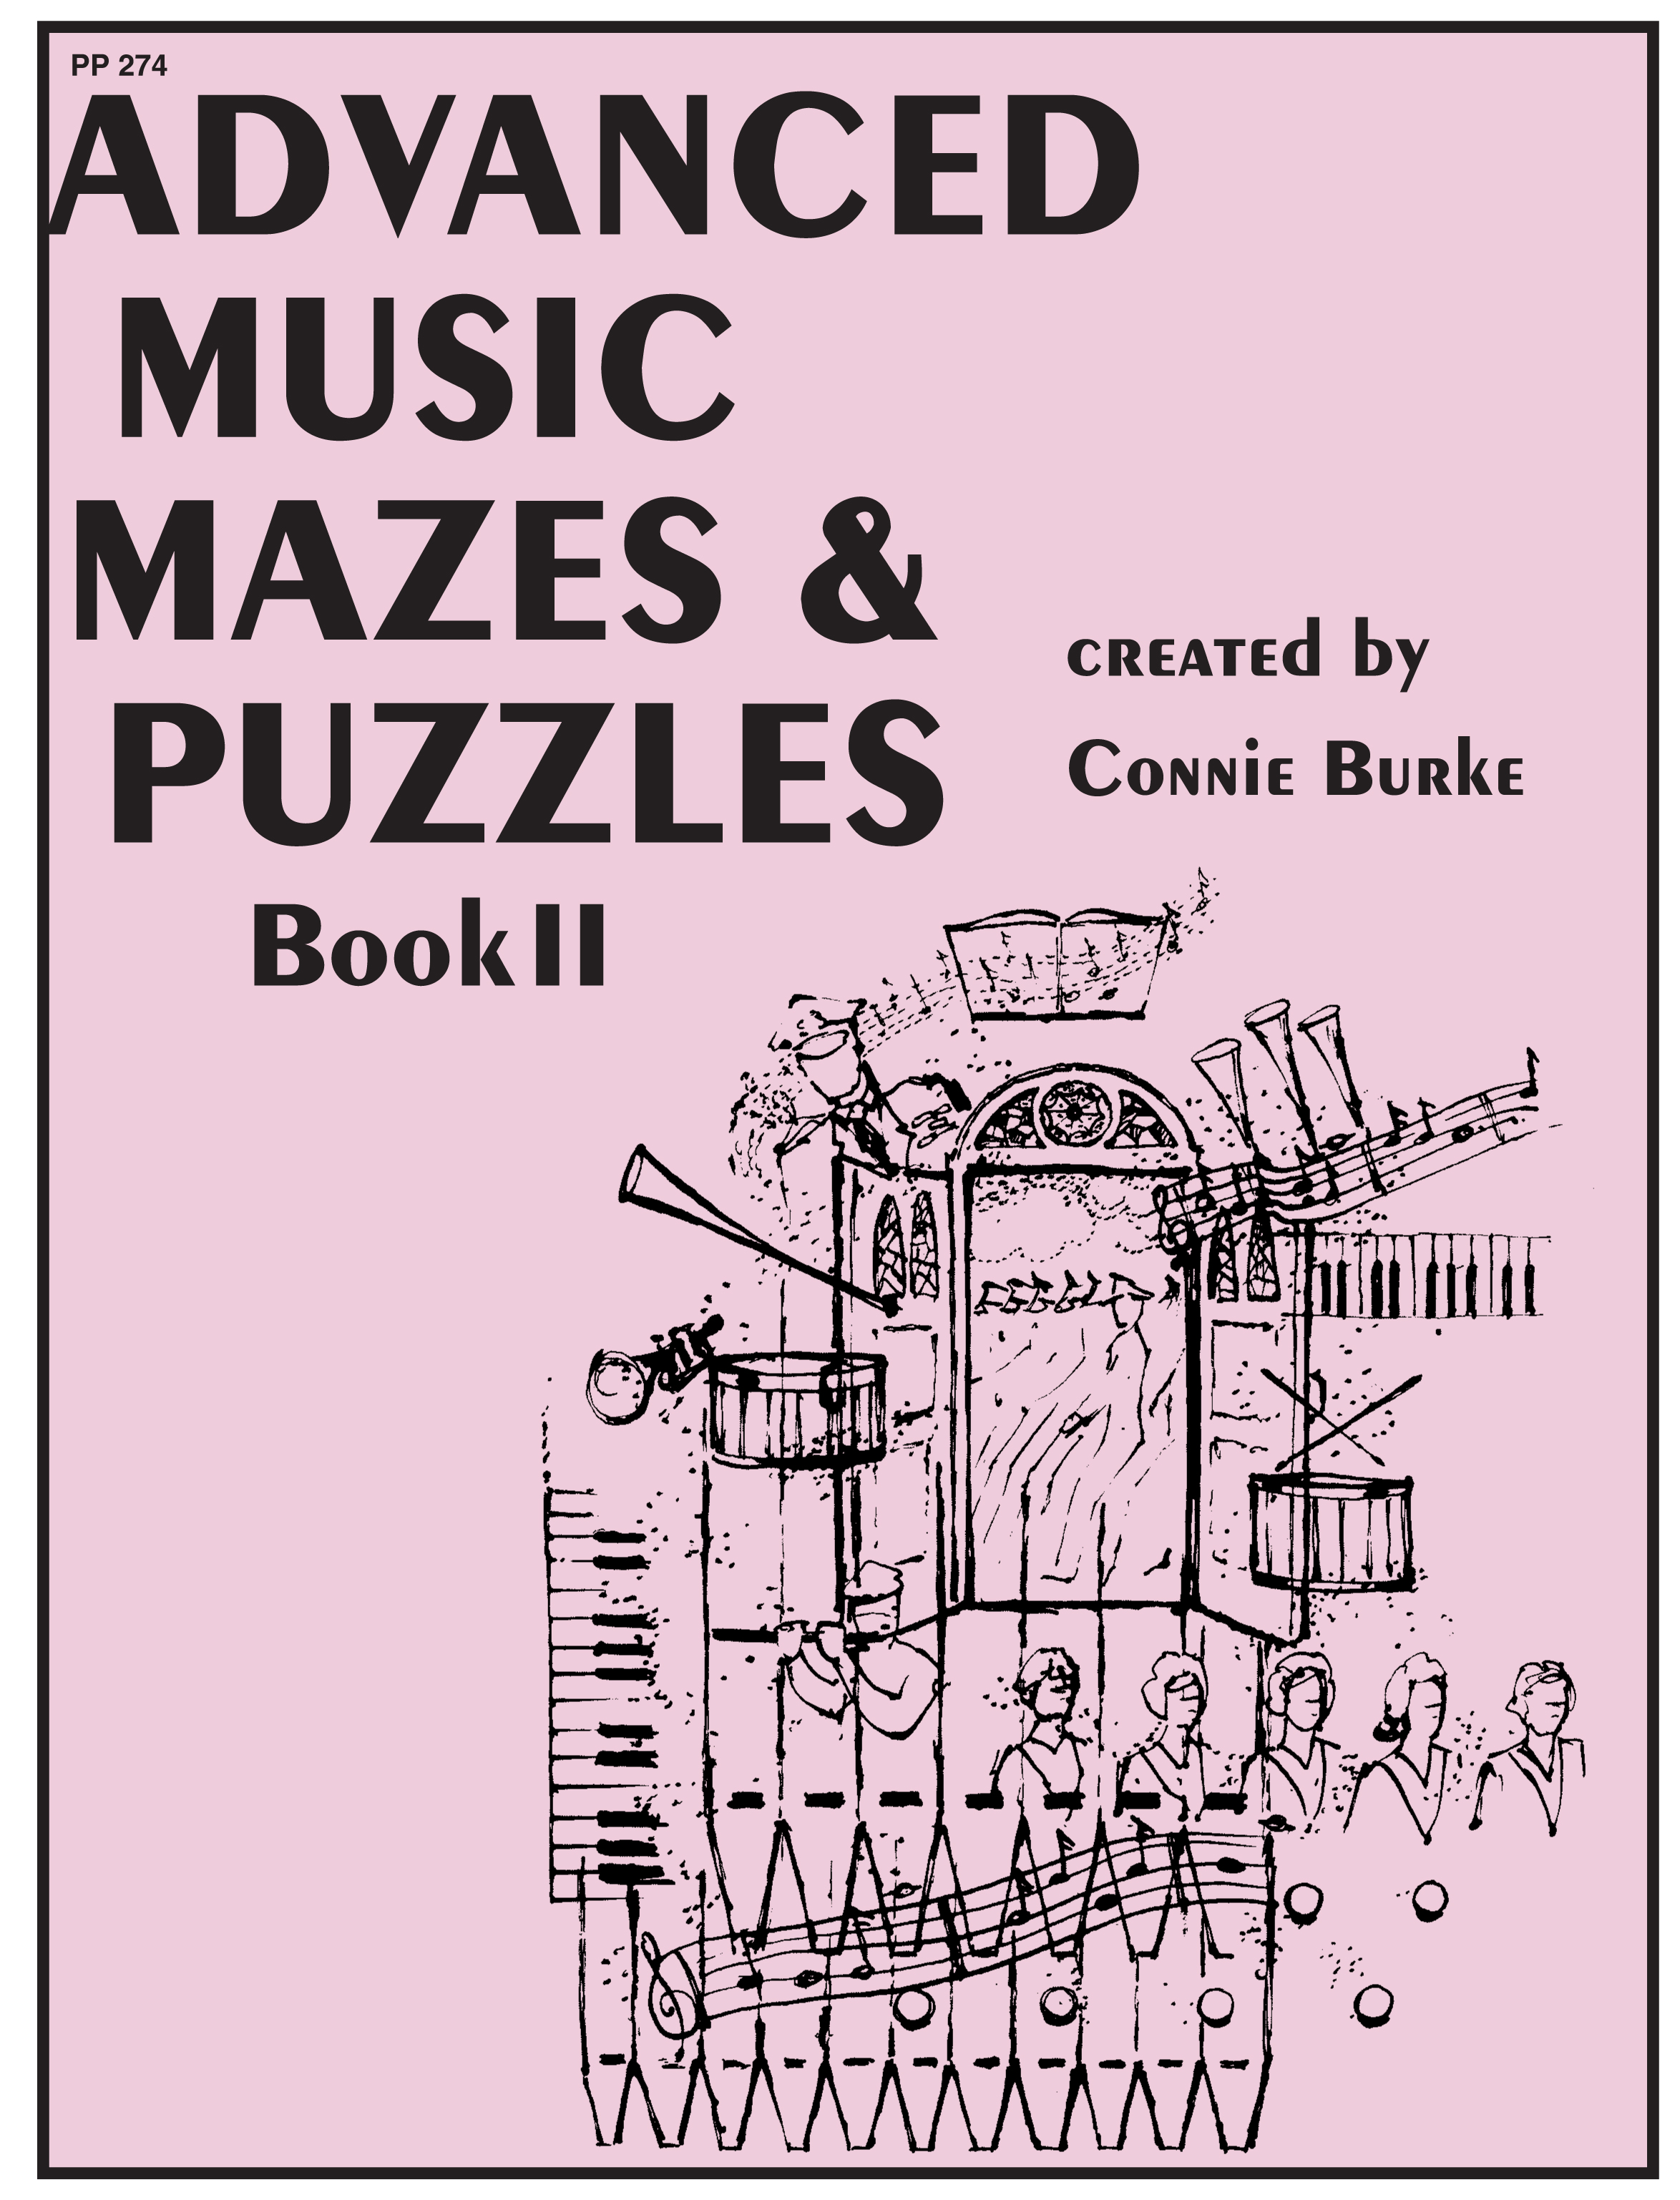 Advanced Music Mazes & Puzzles, Book II